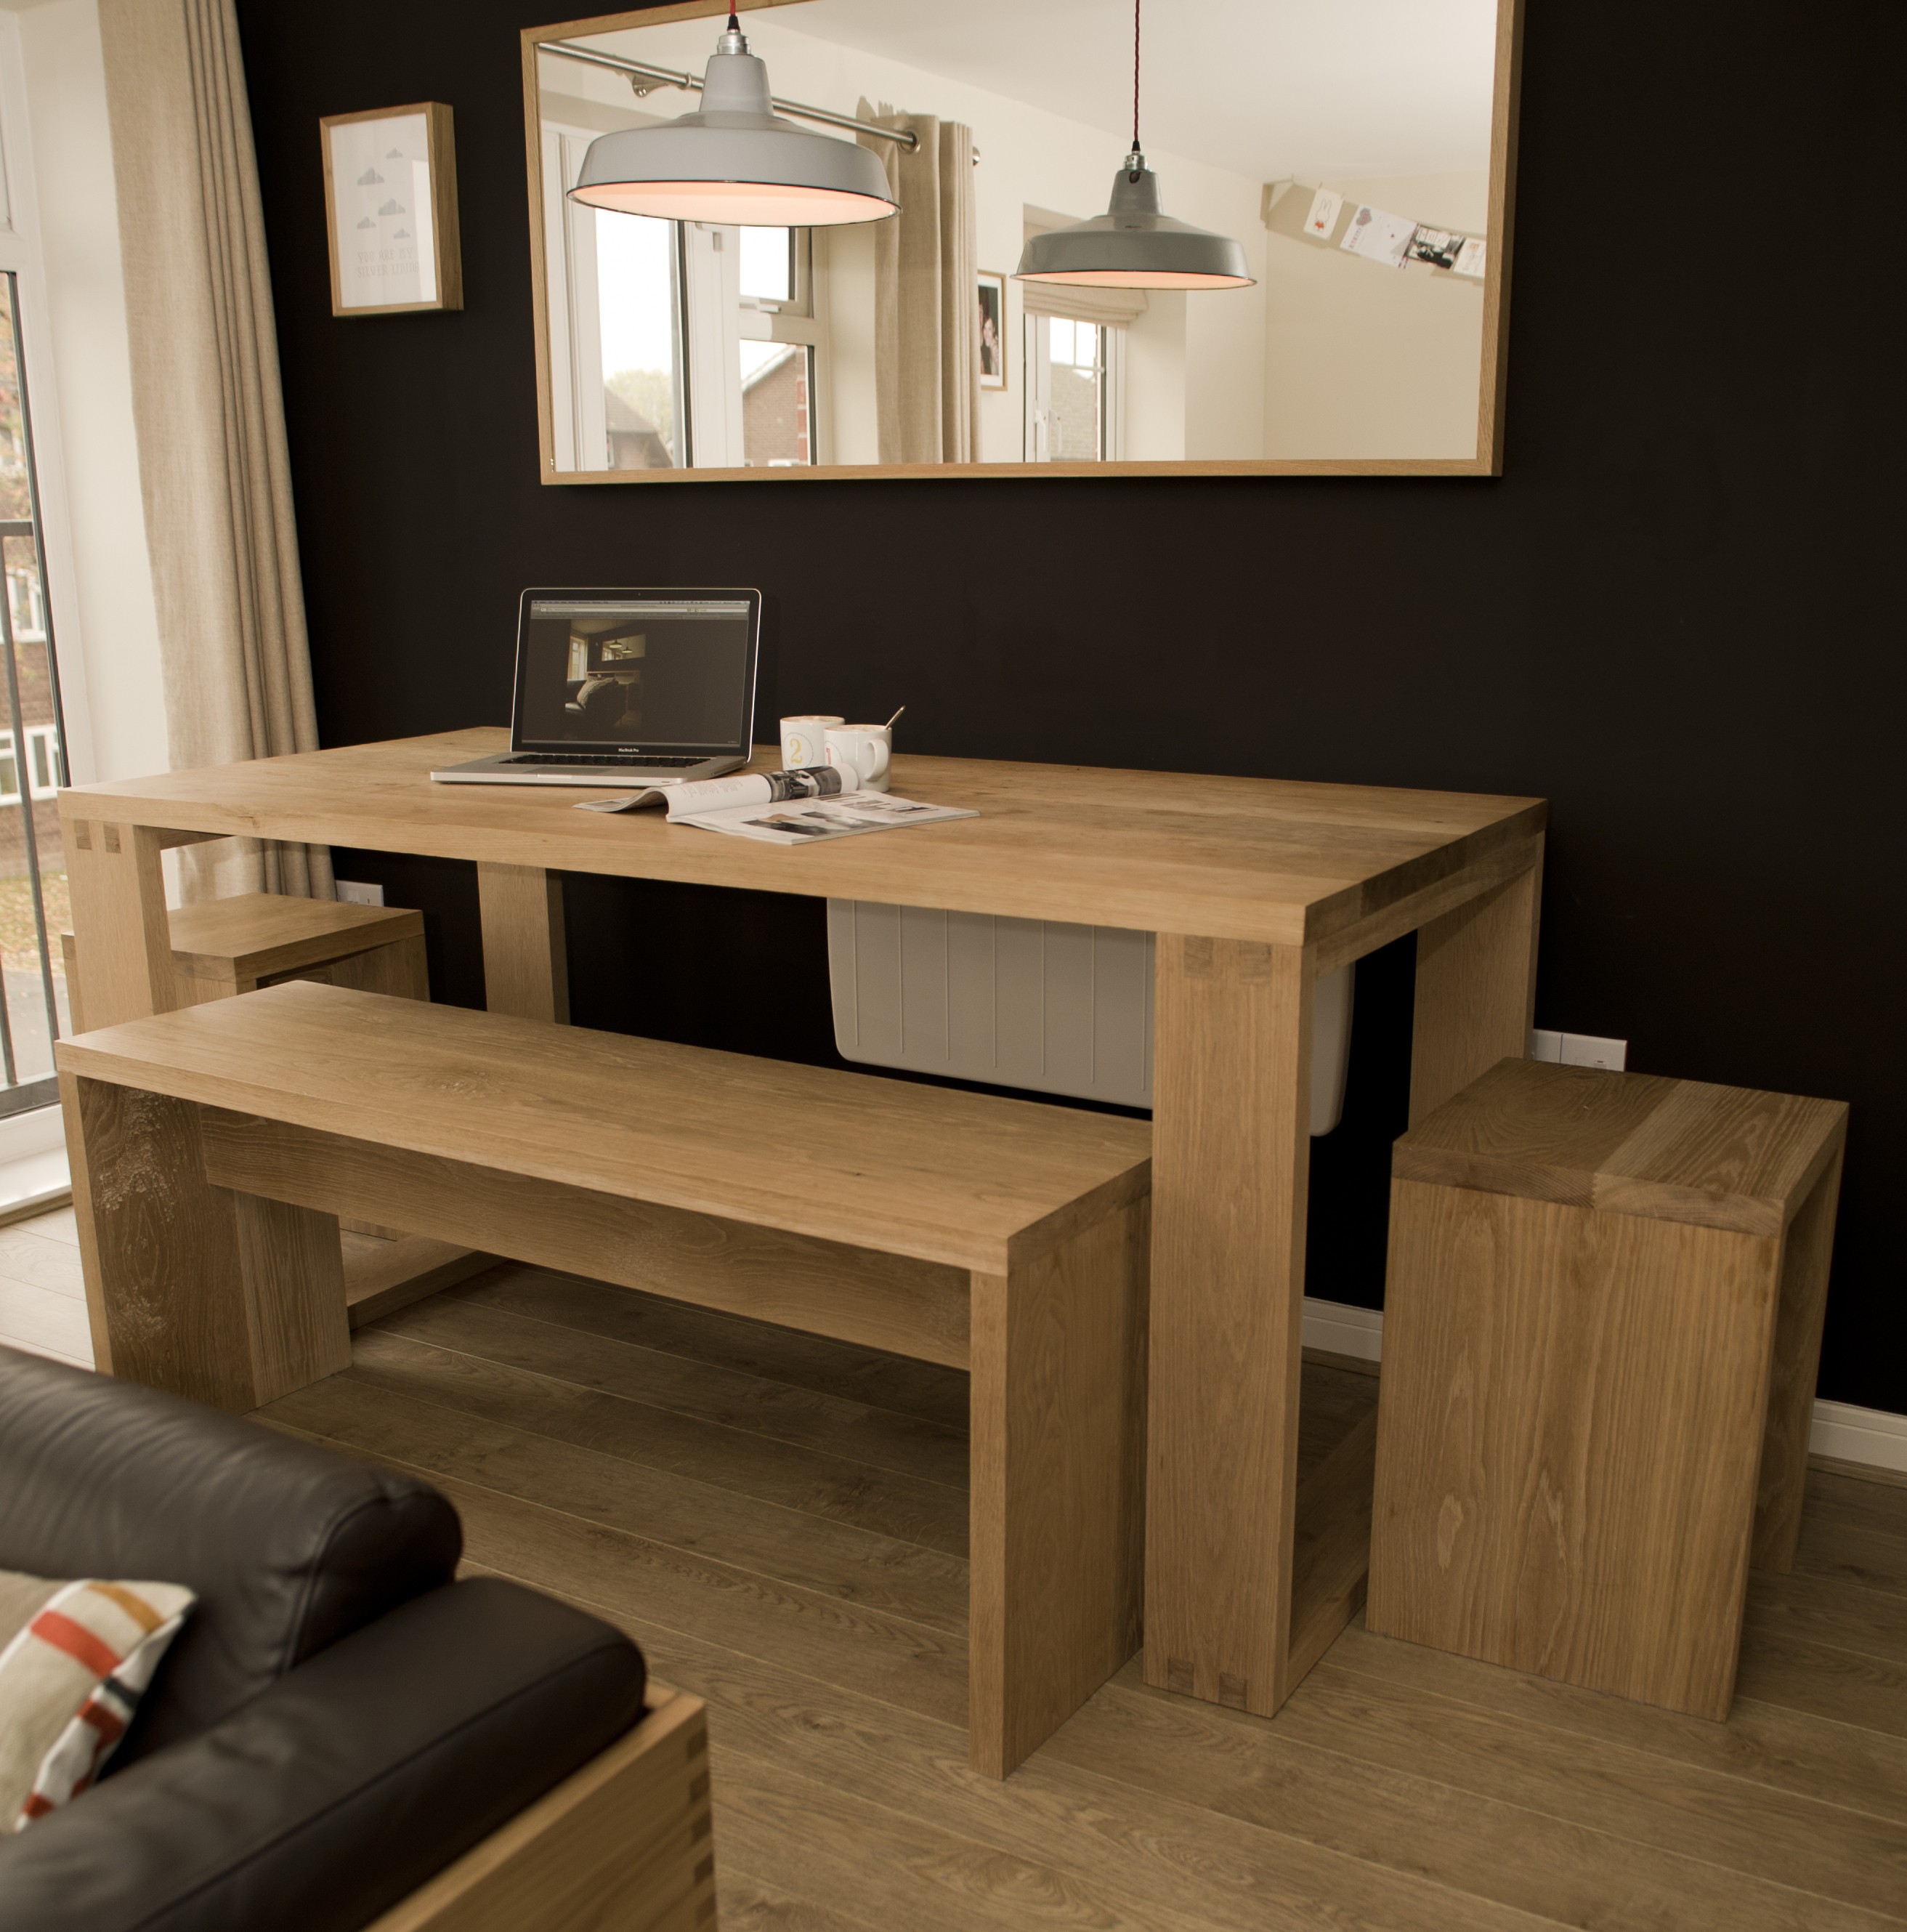 Best ideas about Dining Room Bench . Save or Pin Solid oak dining room table bench and stools Now.